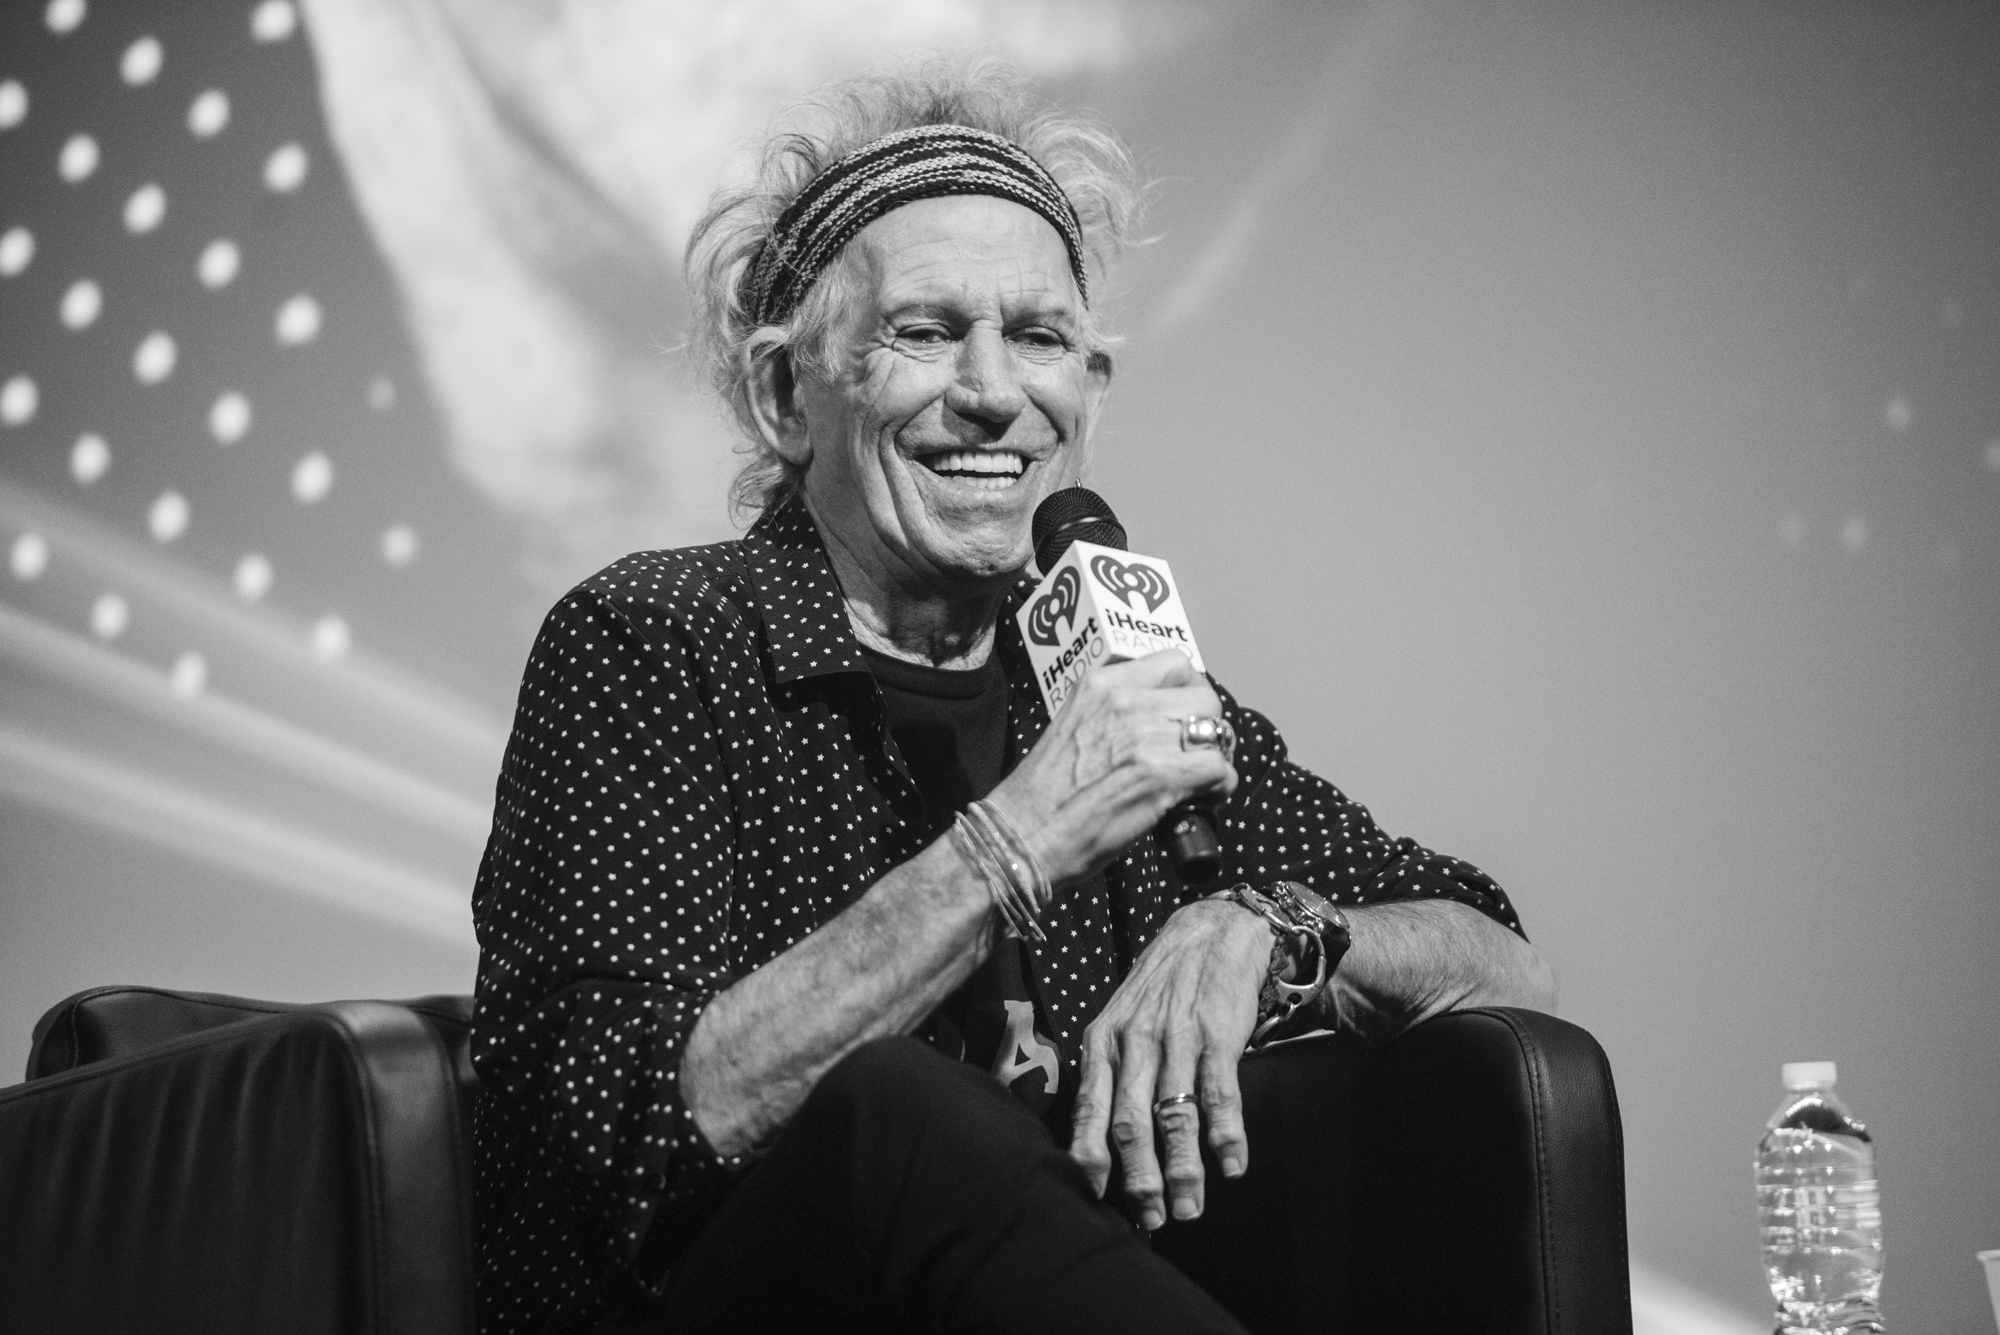 iHeartRadio ICONS with Jim Kerr interviewing Keith Richards. Photo by: XX for iHeartRadio